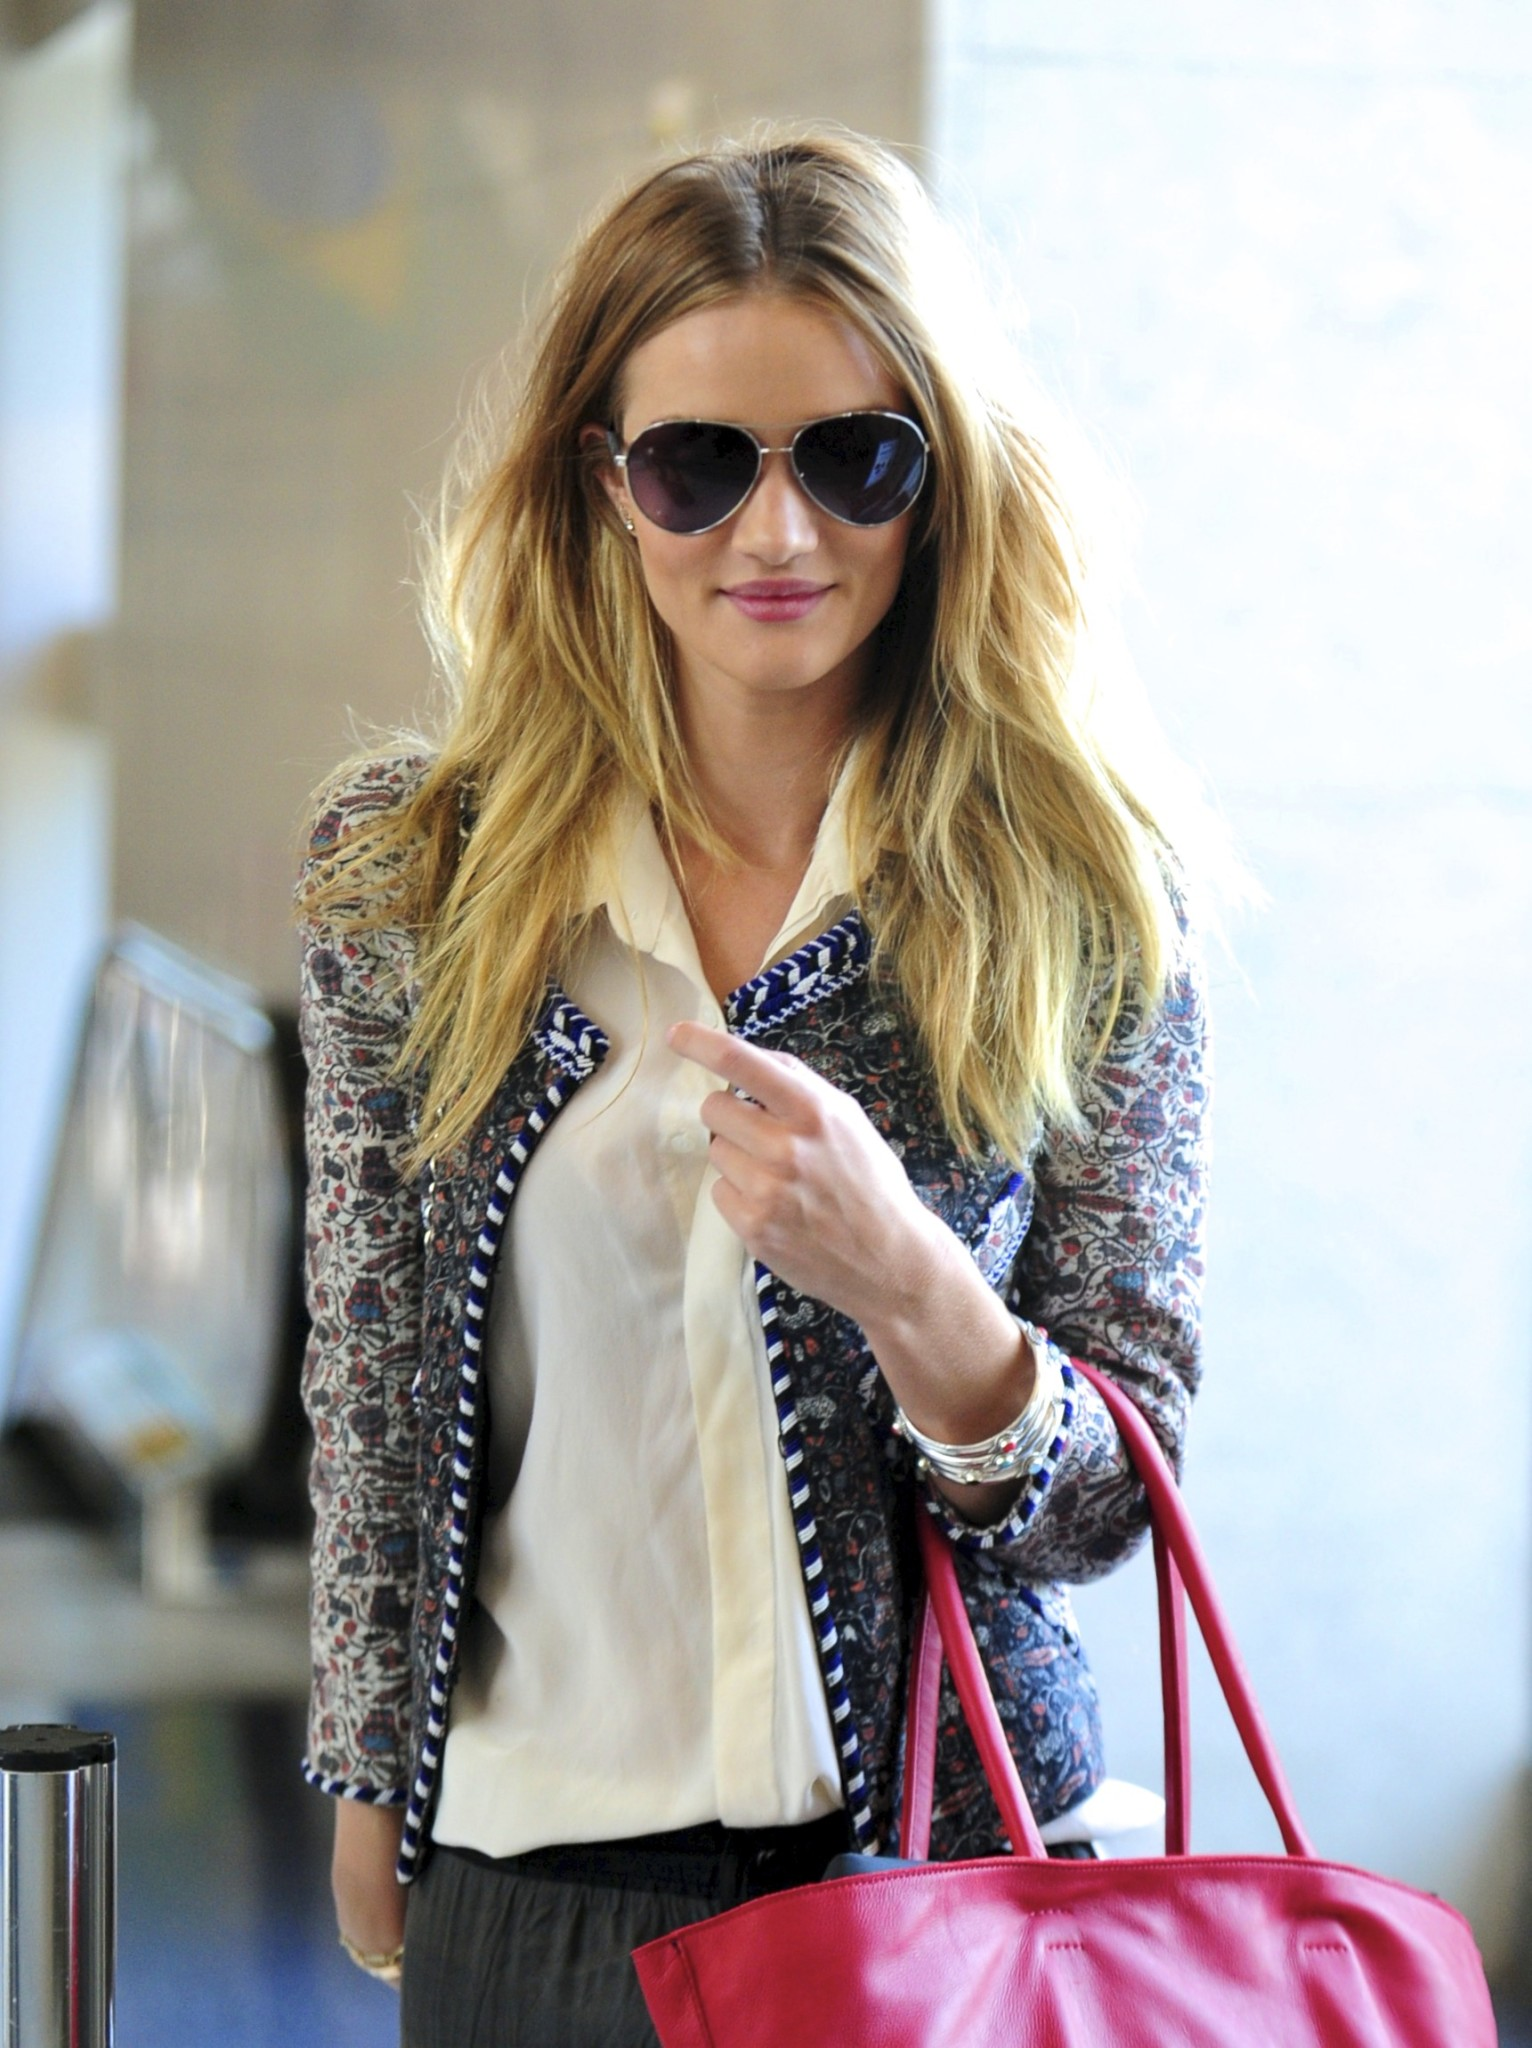 ©NATIONAL PHOTO GROUP  Rosie Huntington Whiteley departs from LAX Airport.  Job: 033111C19 EXCLUSIVE March 30th, 2011 Los Angeles, CA NPG.com